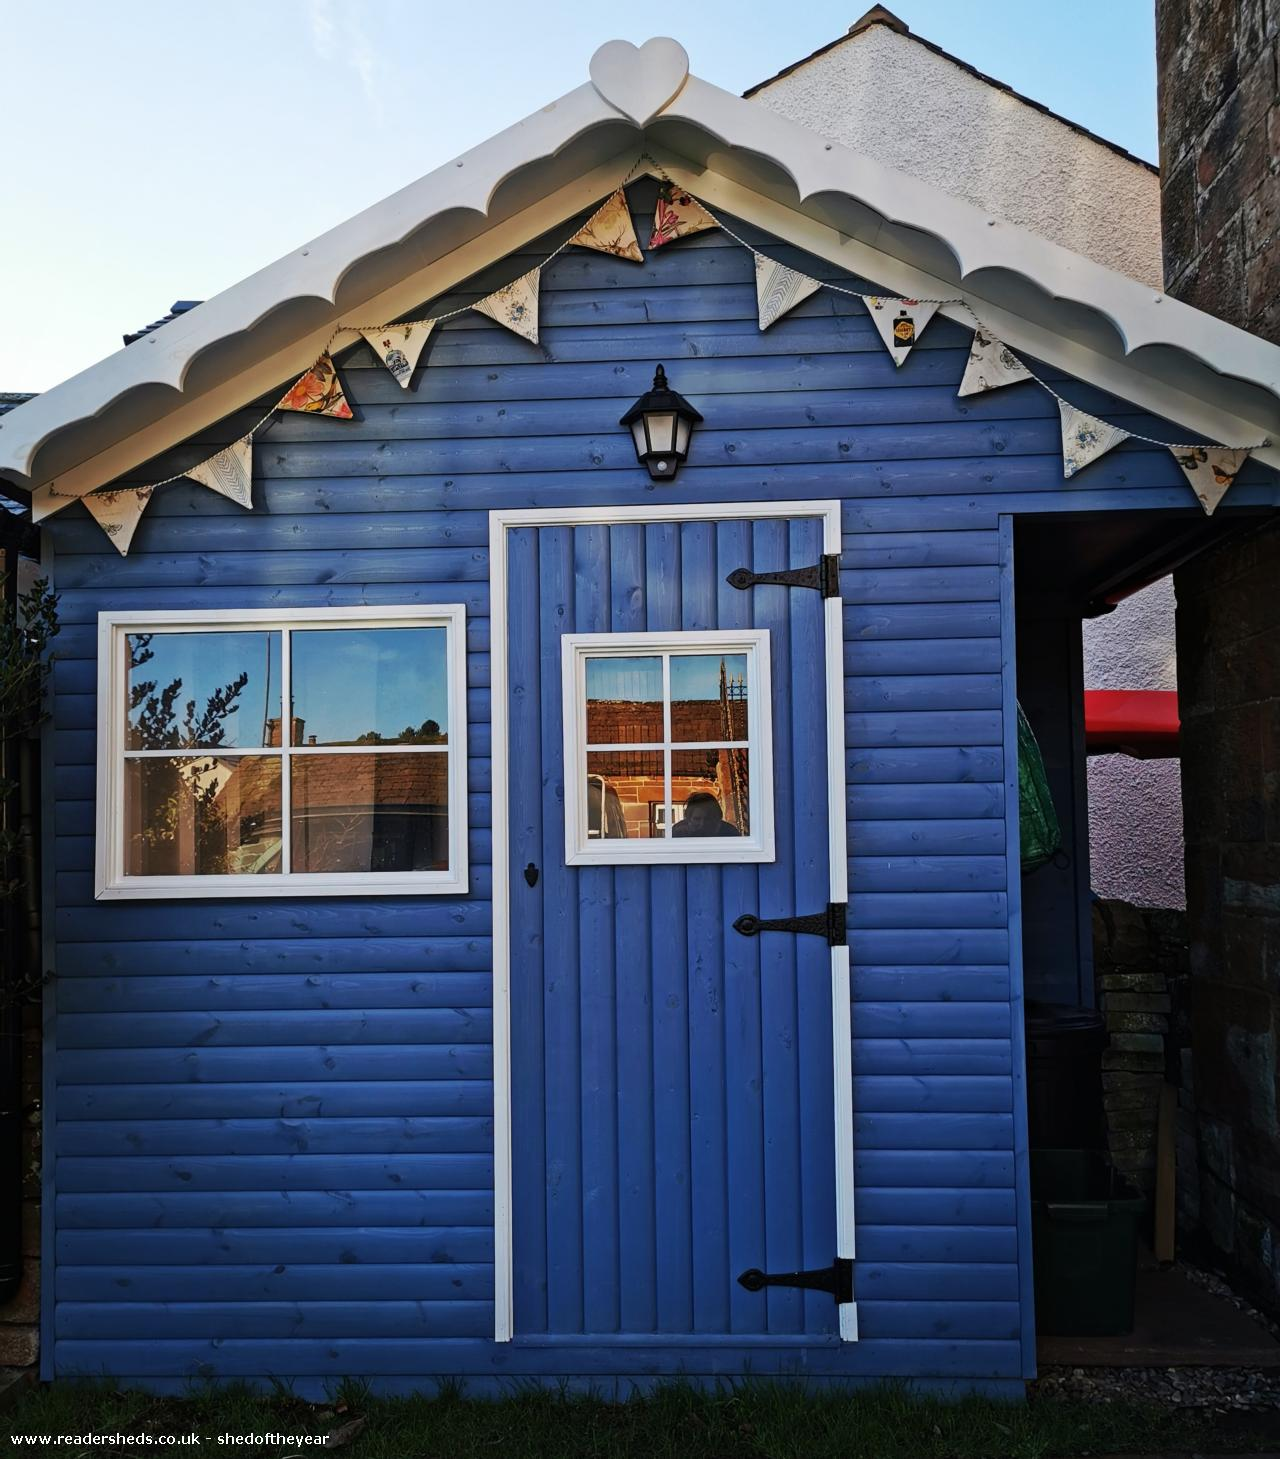 Photo of Posh Blue Shed, entry to Shed of the year-Front view bunting